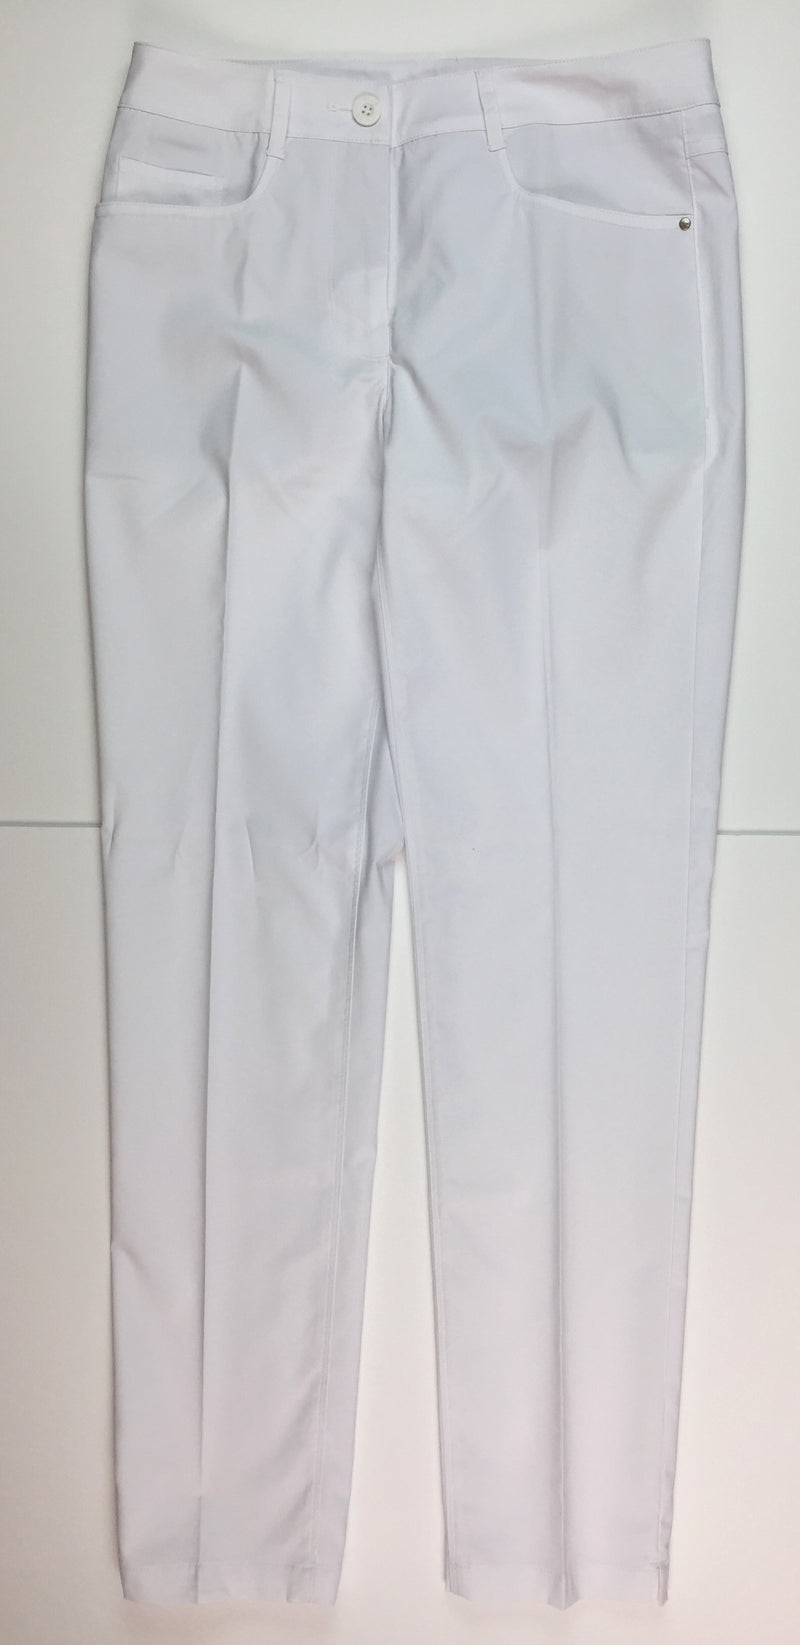 Nivo White Golf Pant 0400